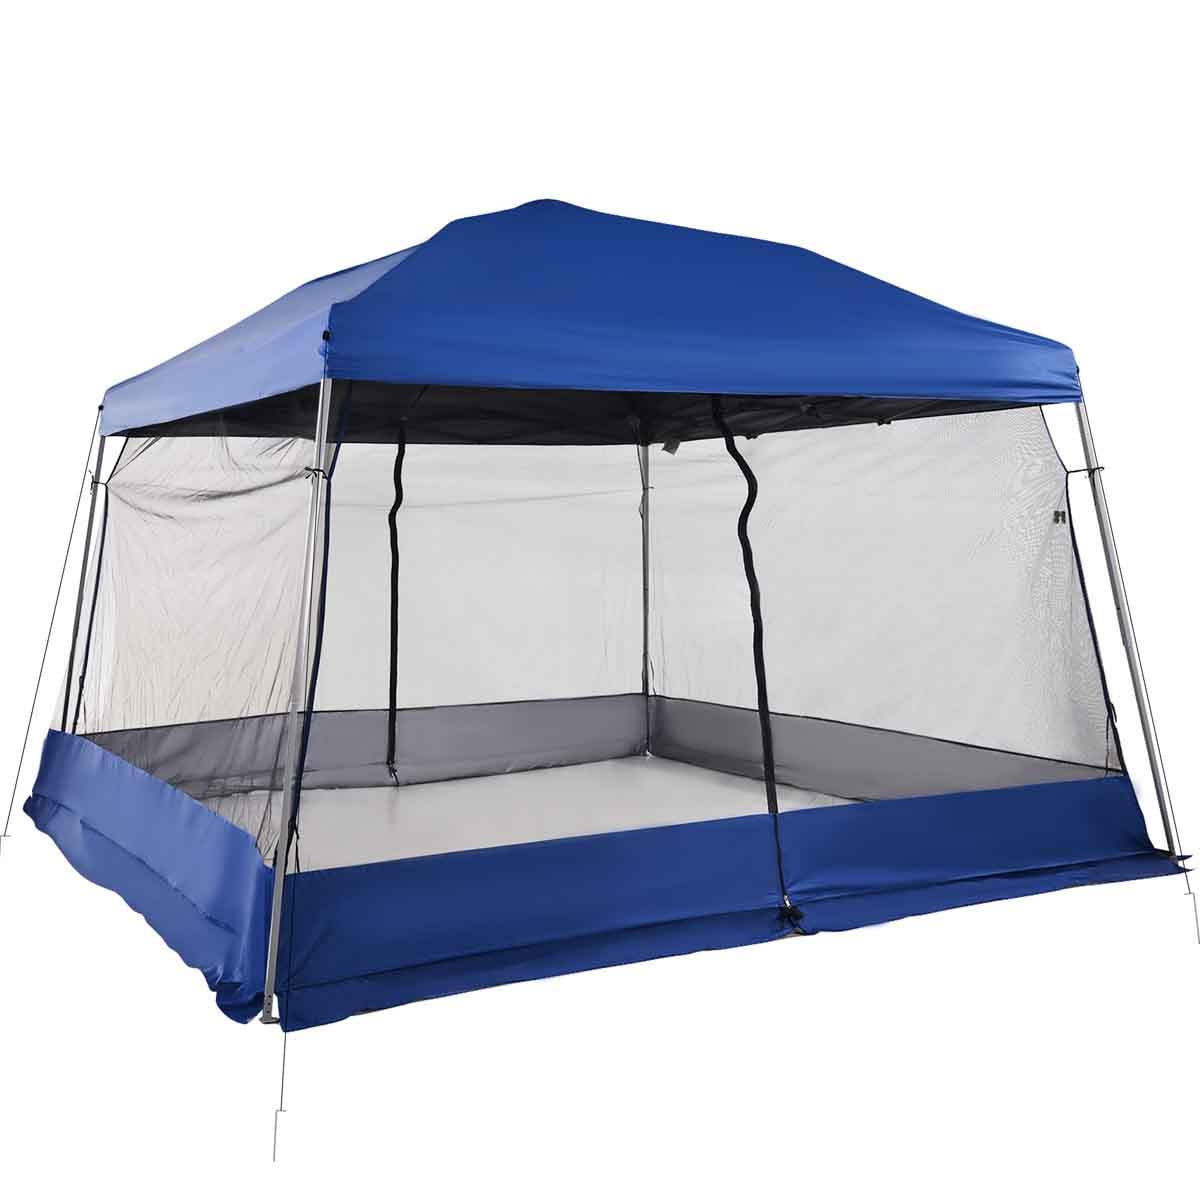 Outsunny 3.6 x 3.6 Pop Up Gazebo with Mesh Walls - Blue